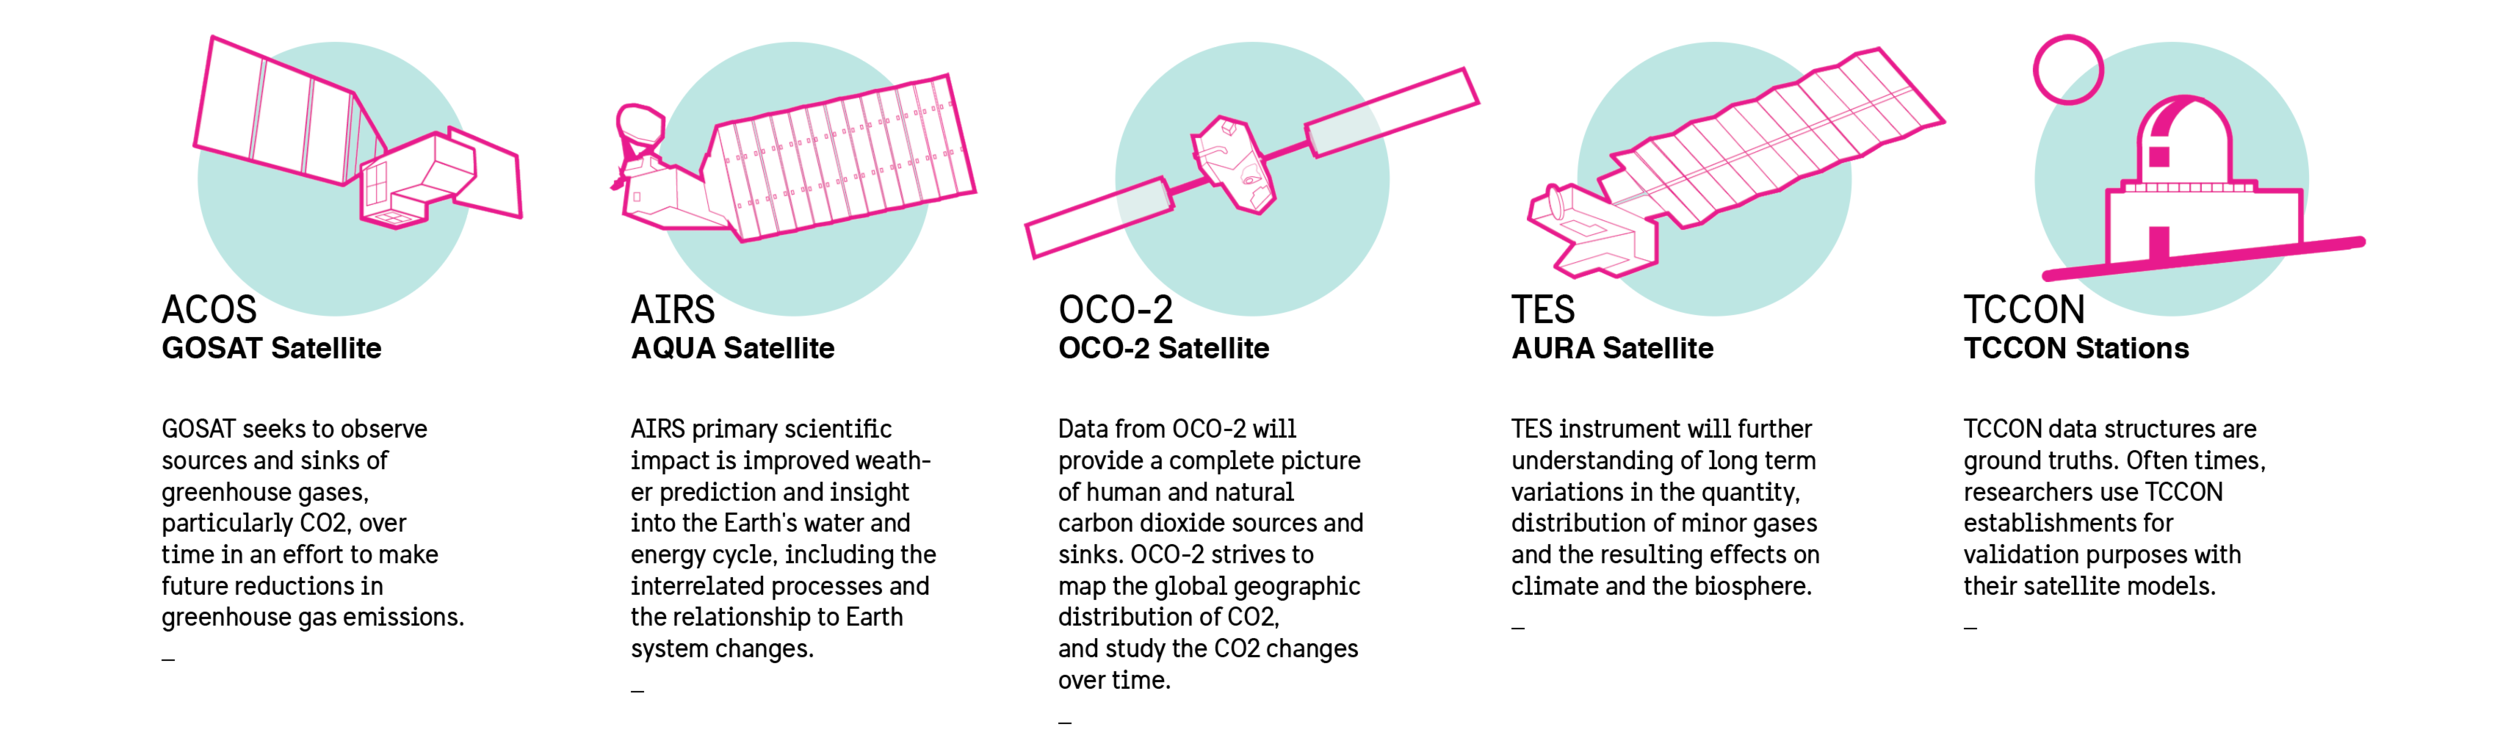 These were the Earth orbiters providing CO-2 data products to the CO-2 Virtual Science Data Environment website.